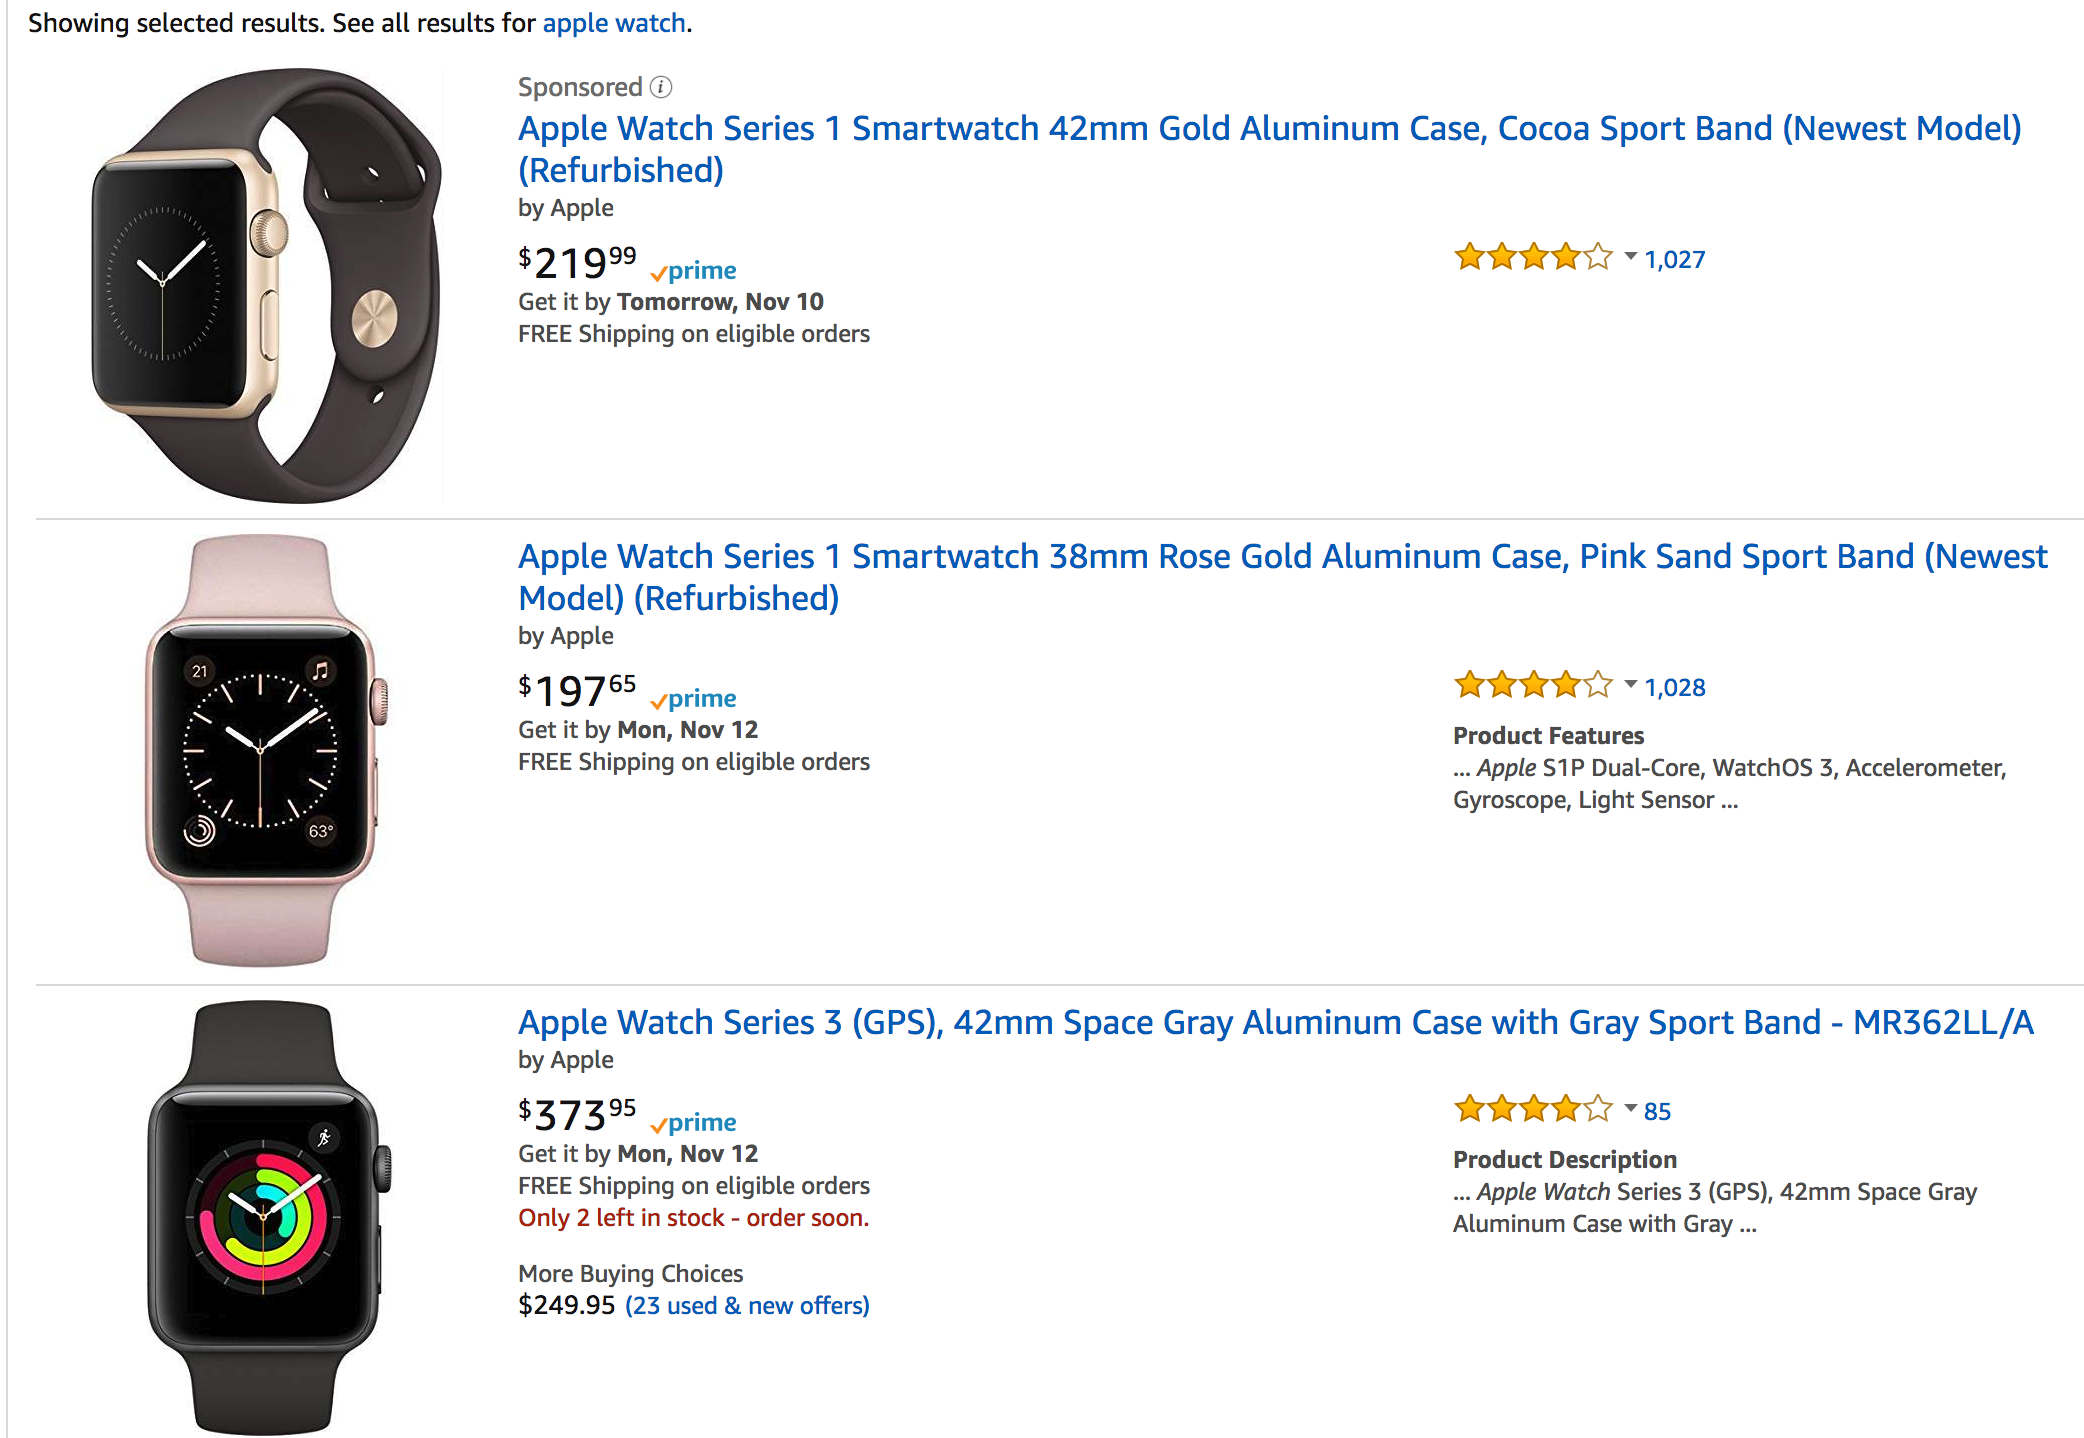 The Wild West Of Apple Products On Amazon Is Dead Gizmodo Uk Watch 2 Series 1 38mm Rose Gold Aluminum Pink Sport Band Iphone Xs 4 And Beats Headphones Not Homepod Though Probably Because Doesnt Want More Competition For Echo